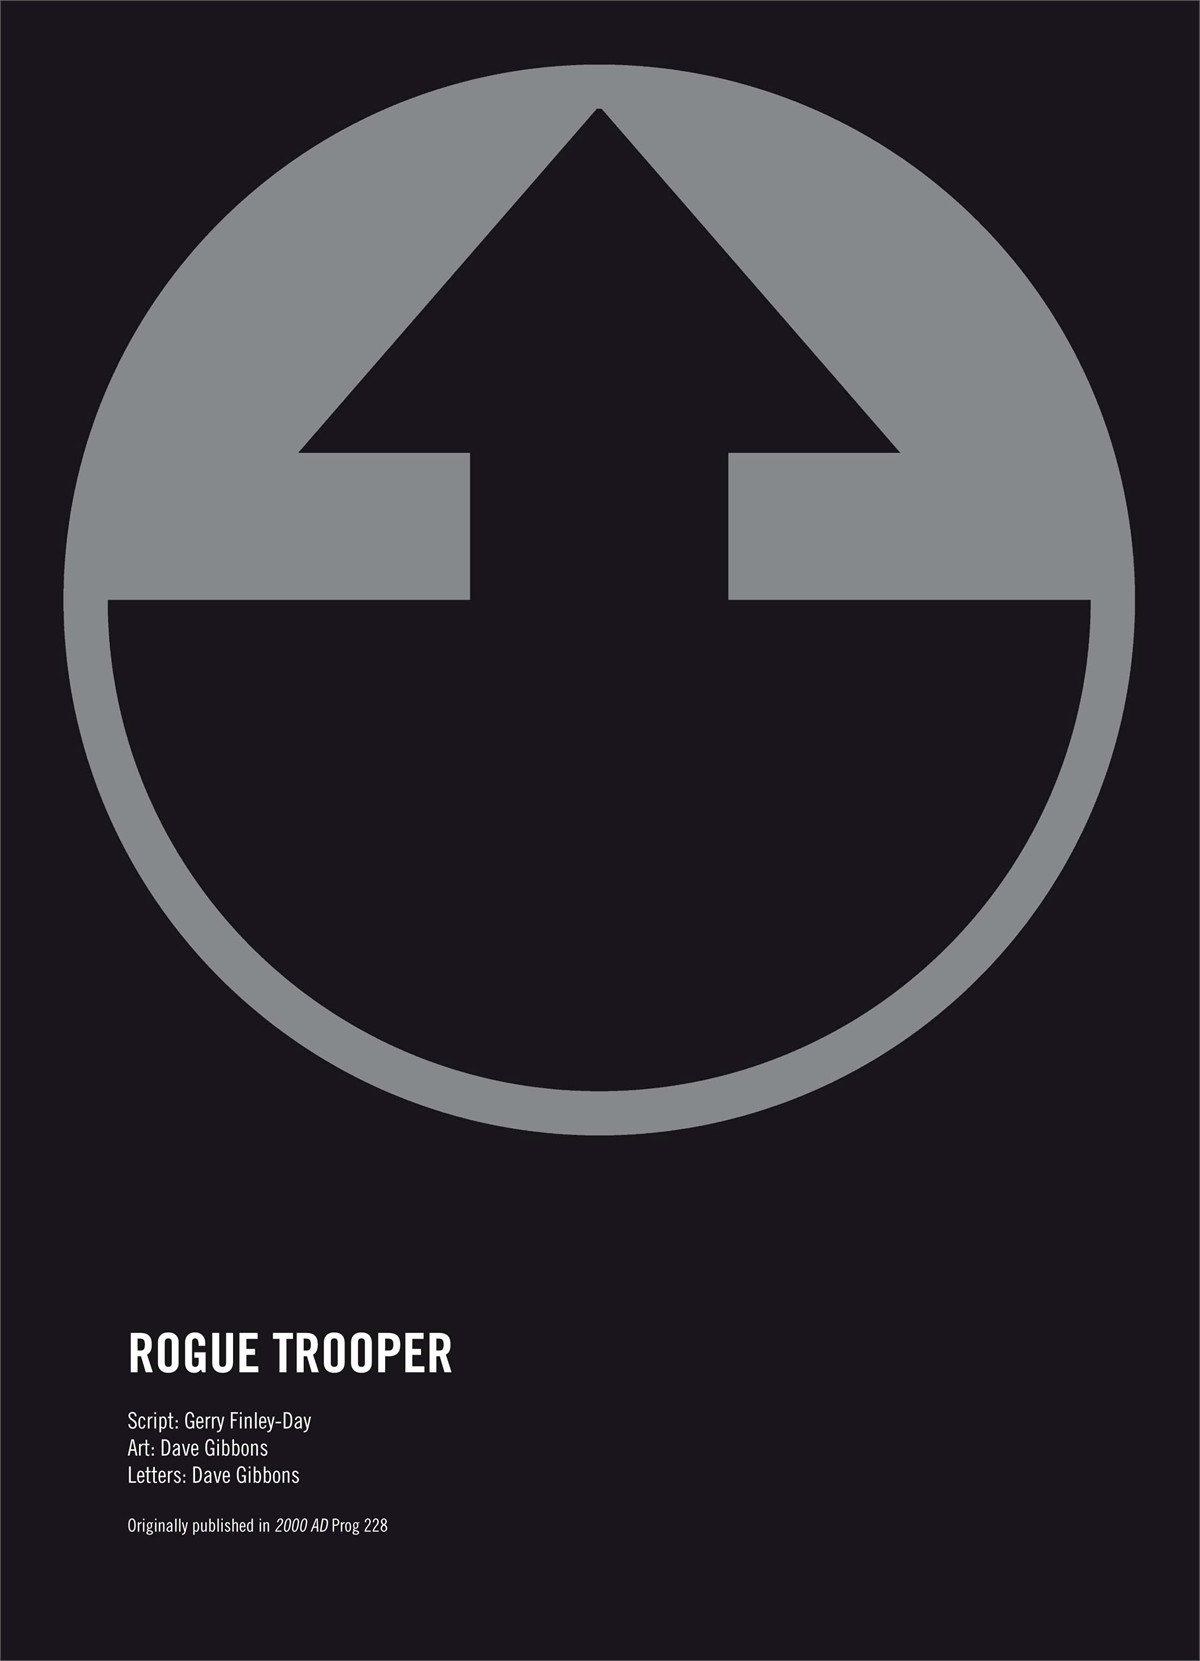 Rogue-trooper-tales-of-nu-earth-1-9781907992704.in01